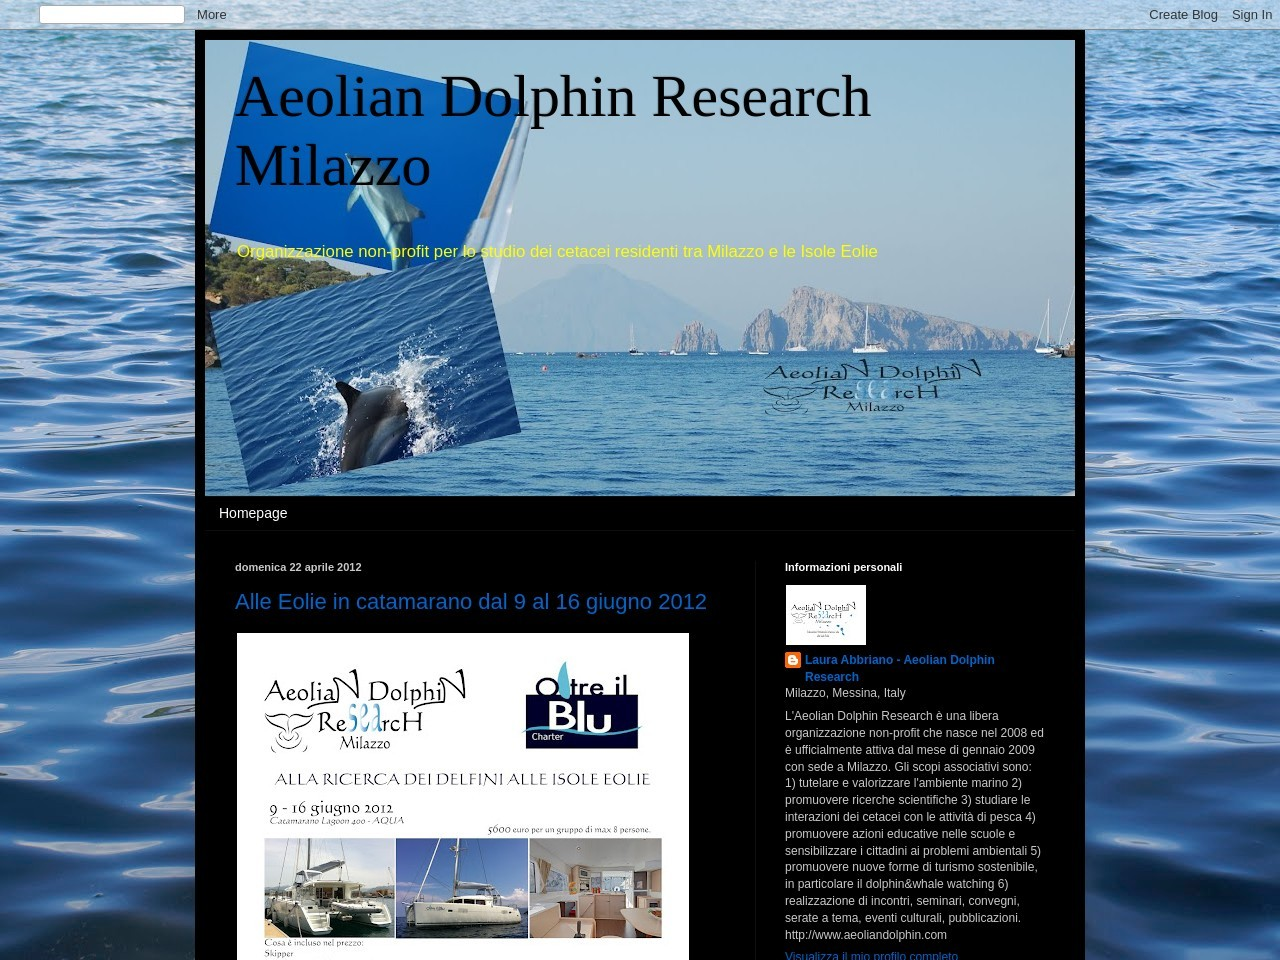 aeolian-dolphin-research